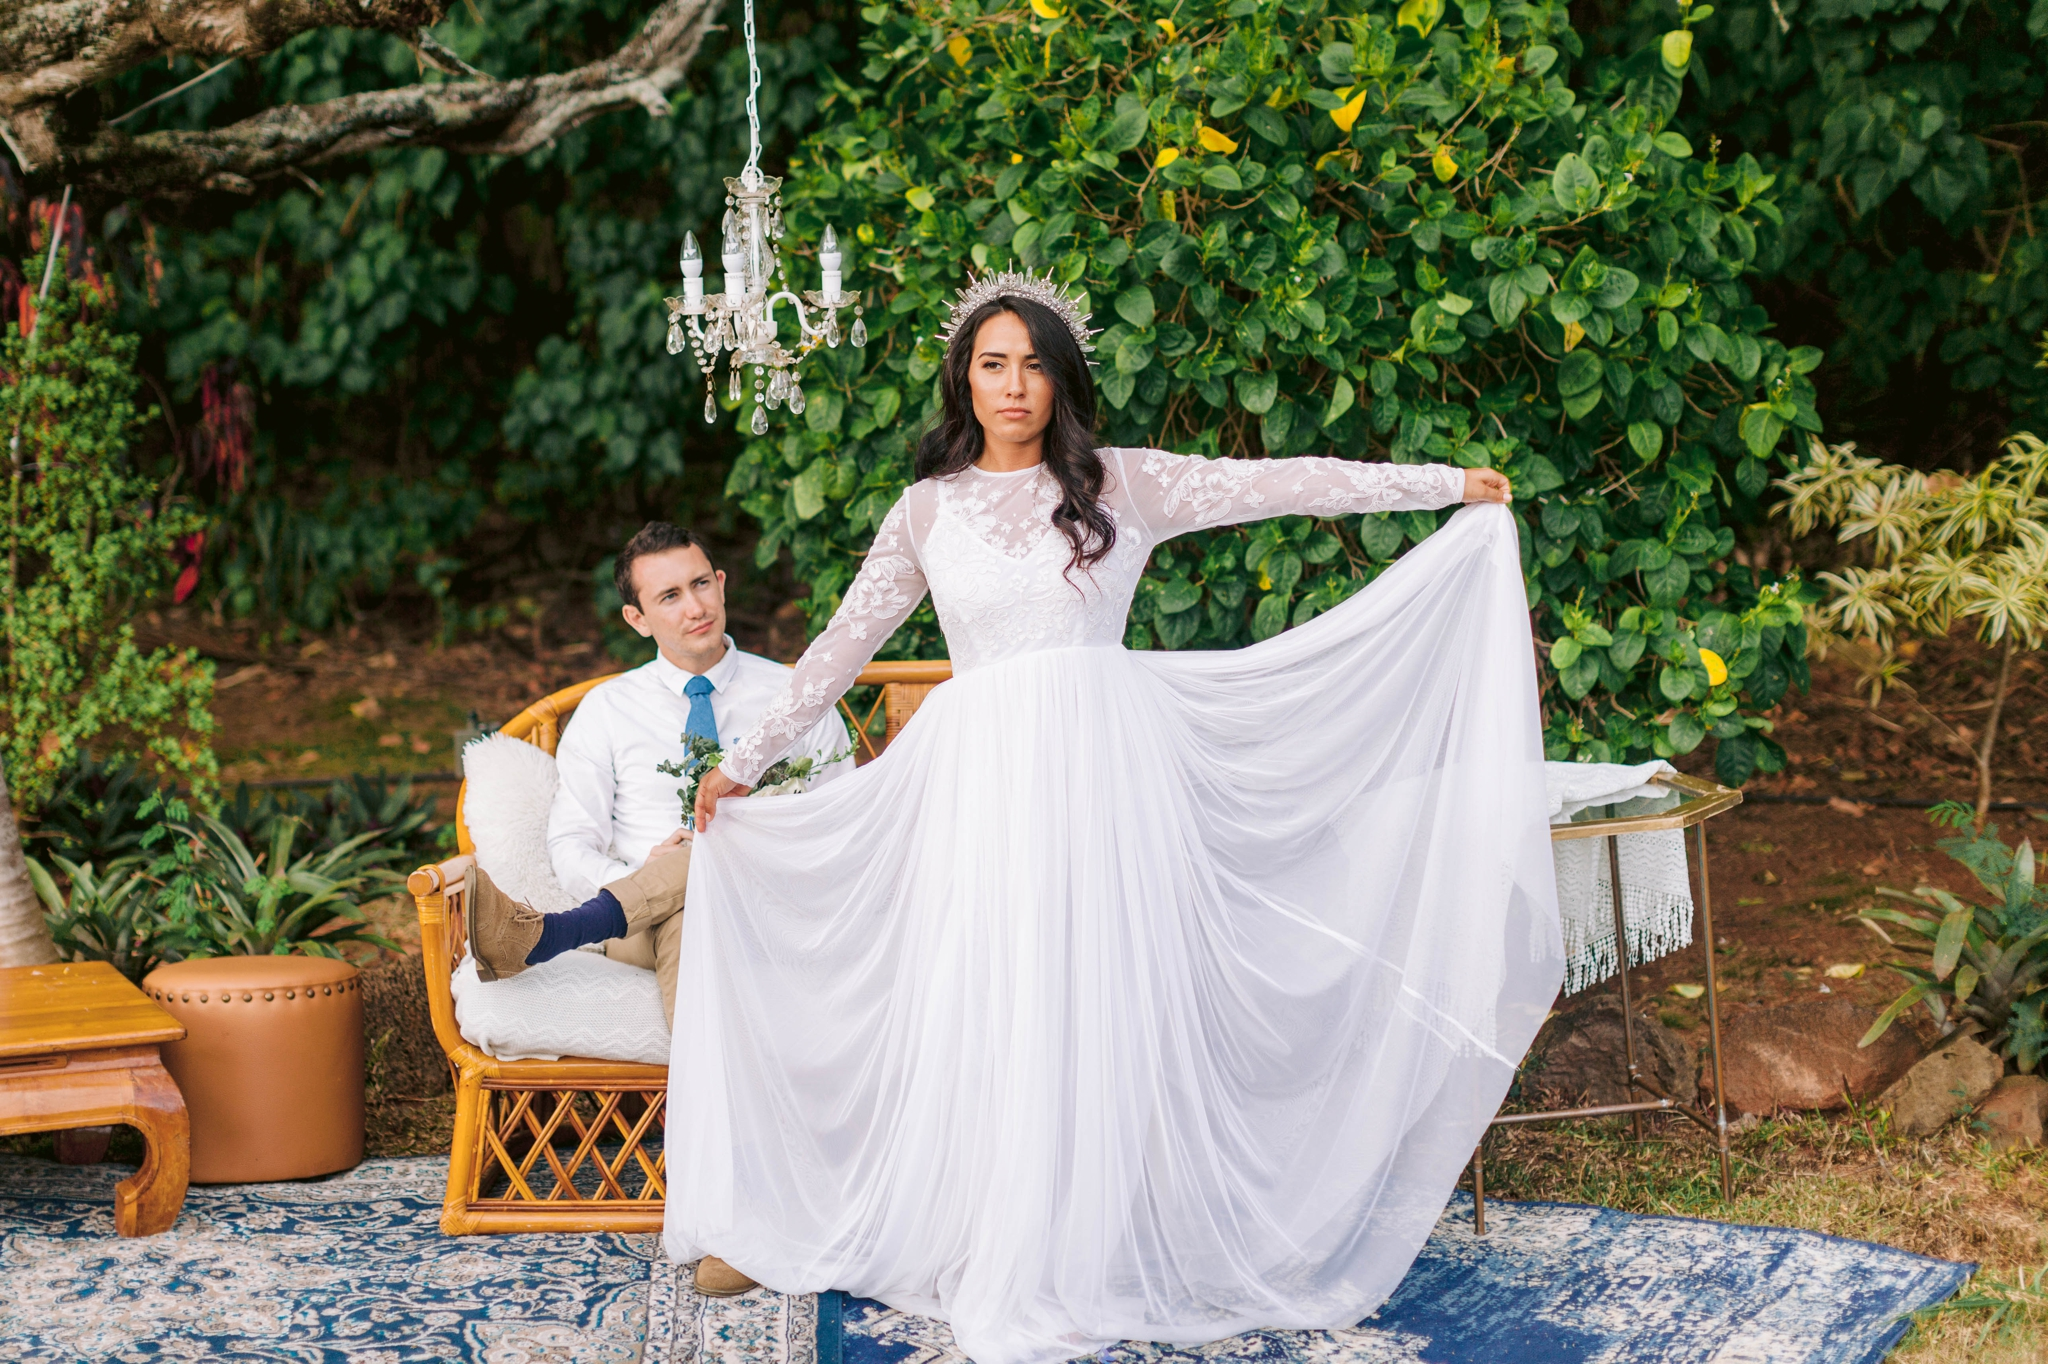 Bride and groom relaxing in an outdoor lounge - bride is wearing a wedding dress by asos and a crystal crown - Ana + Elijah - Wedding at Loulu Palm in Haleiwa, HI - Oahu Hawaii Wedding Photographer